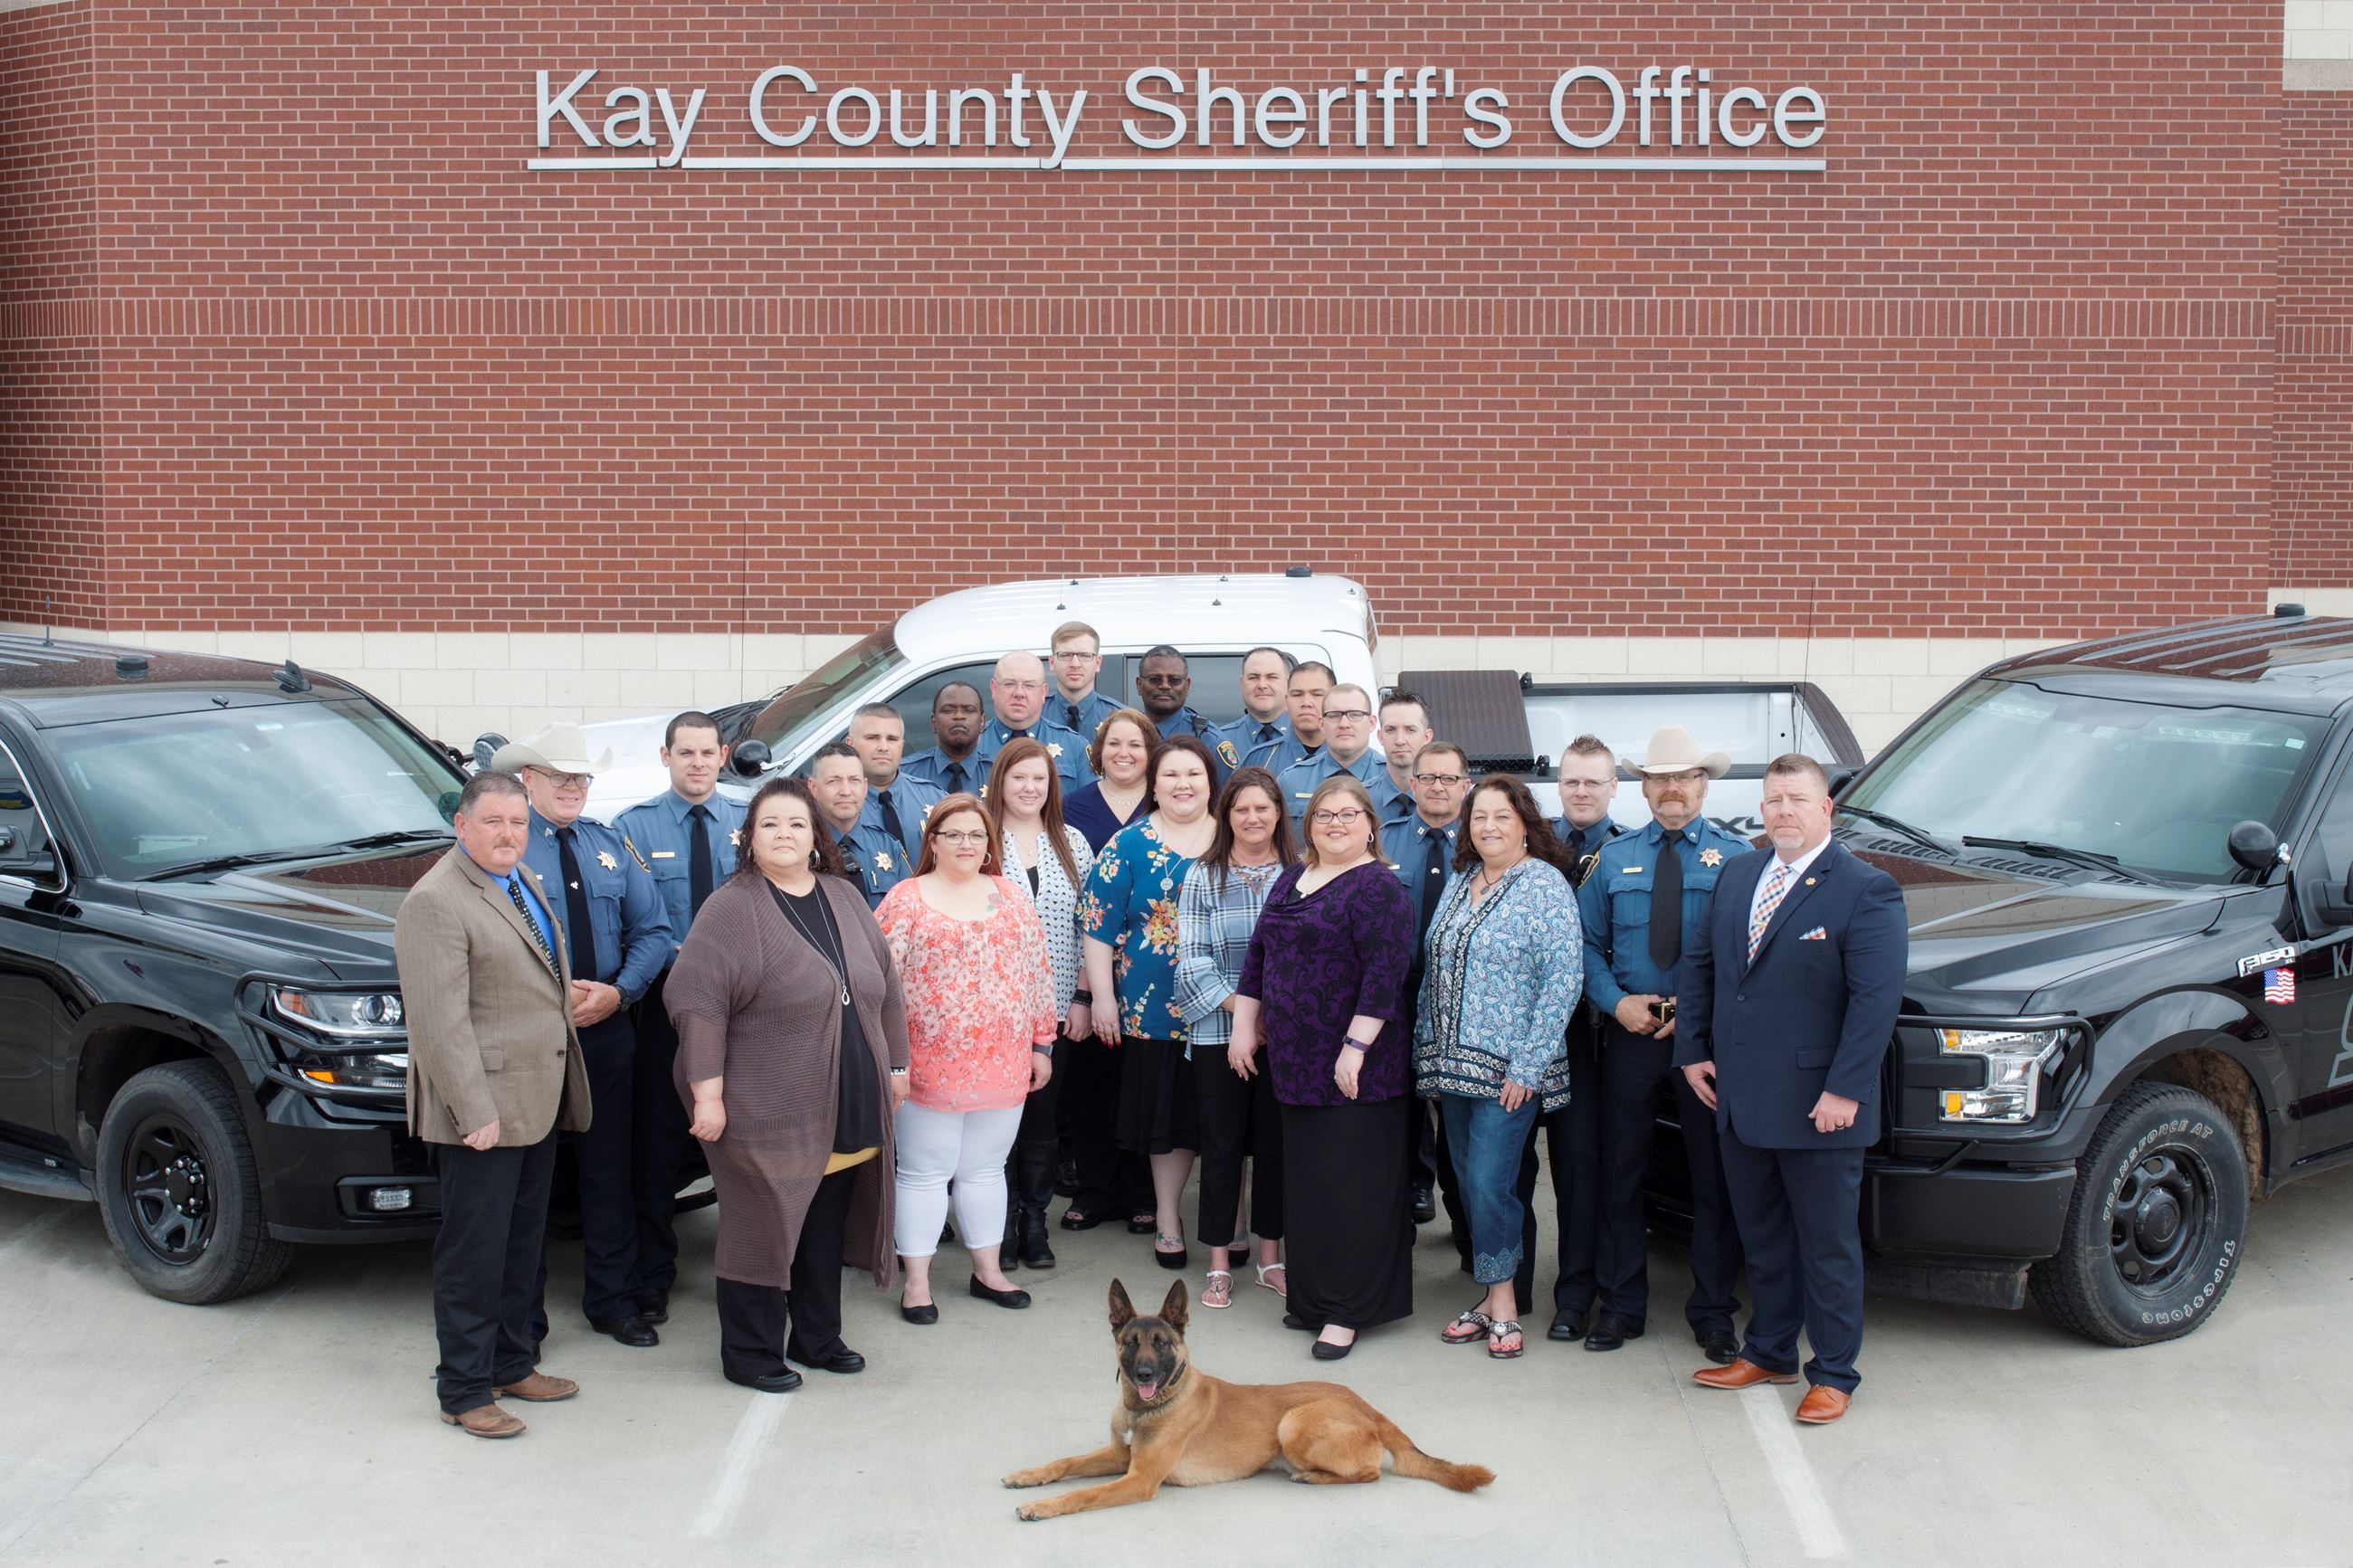 Kay County Sheriff's Office Group Picture